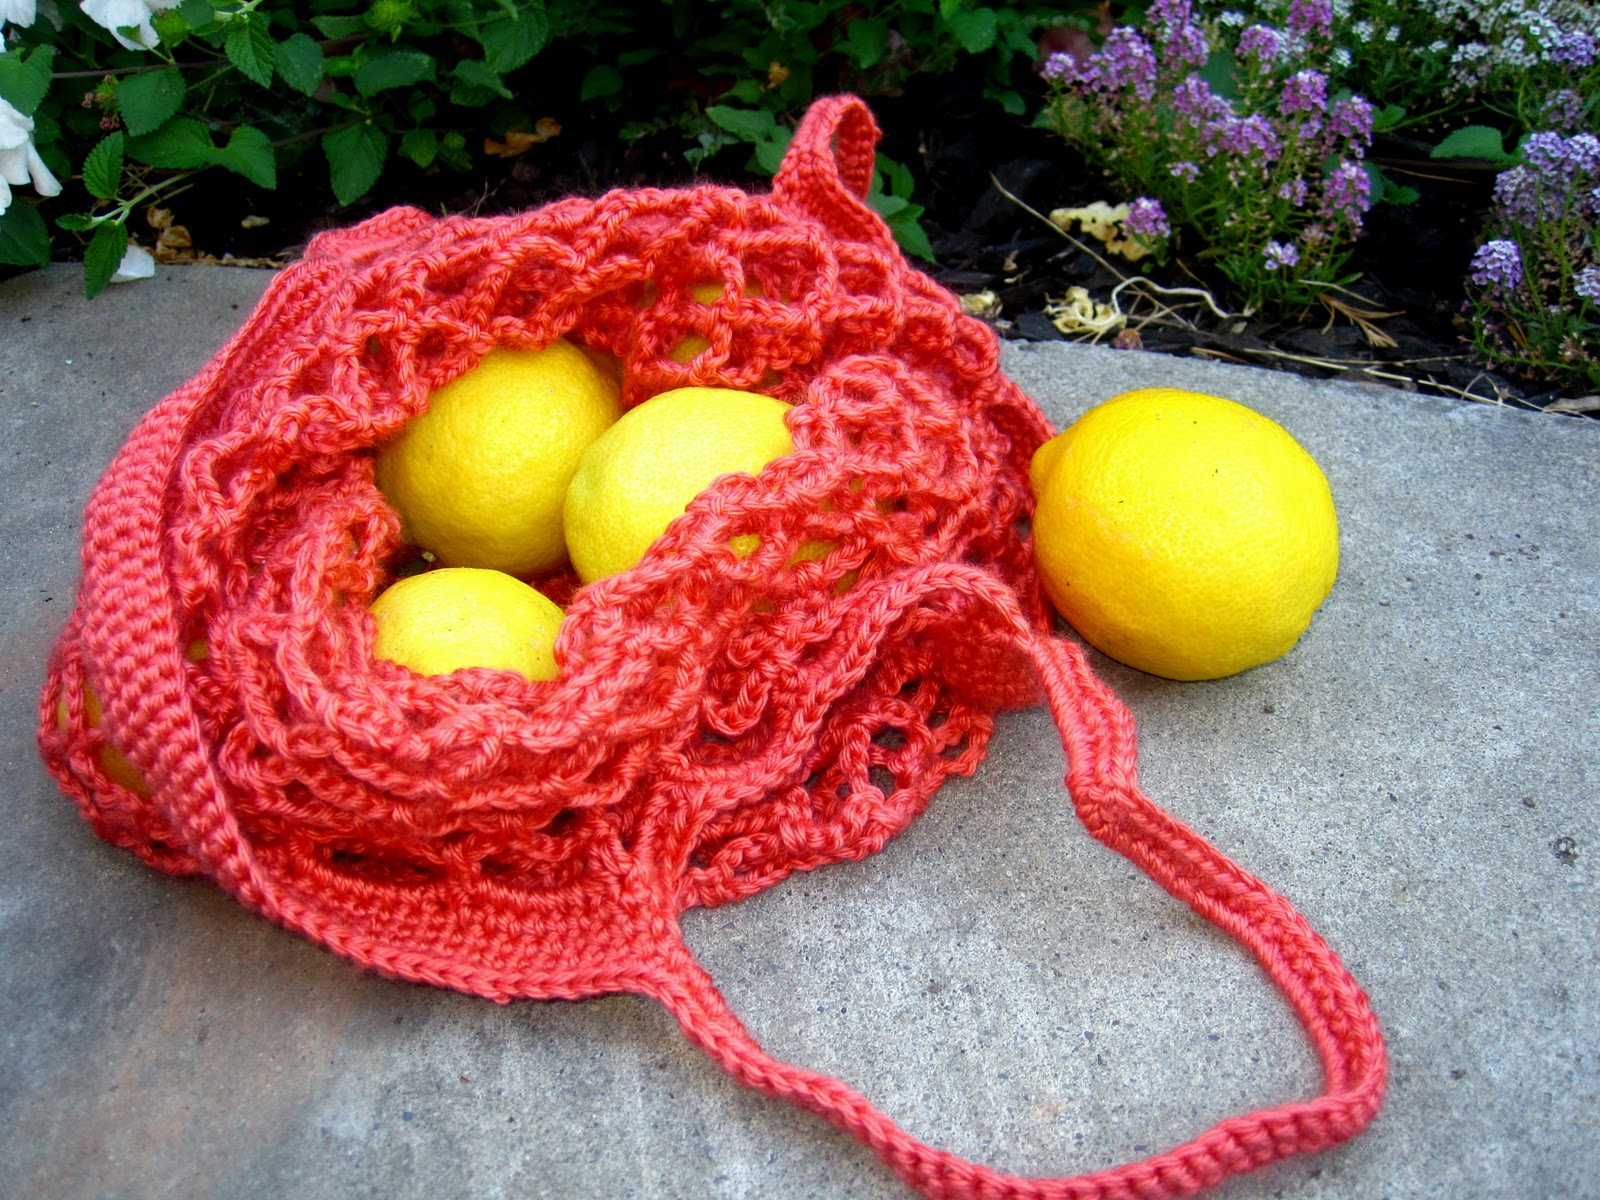 Crochet Vegetable Bag Pattern : More Fun With An Apron: Crochet Produce Bag